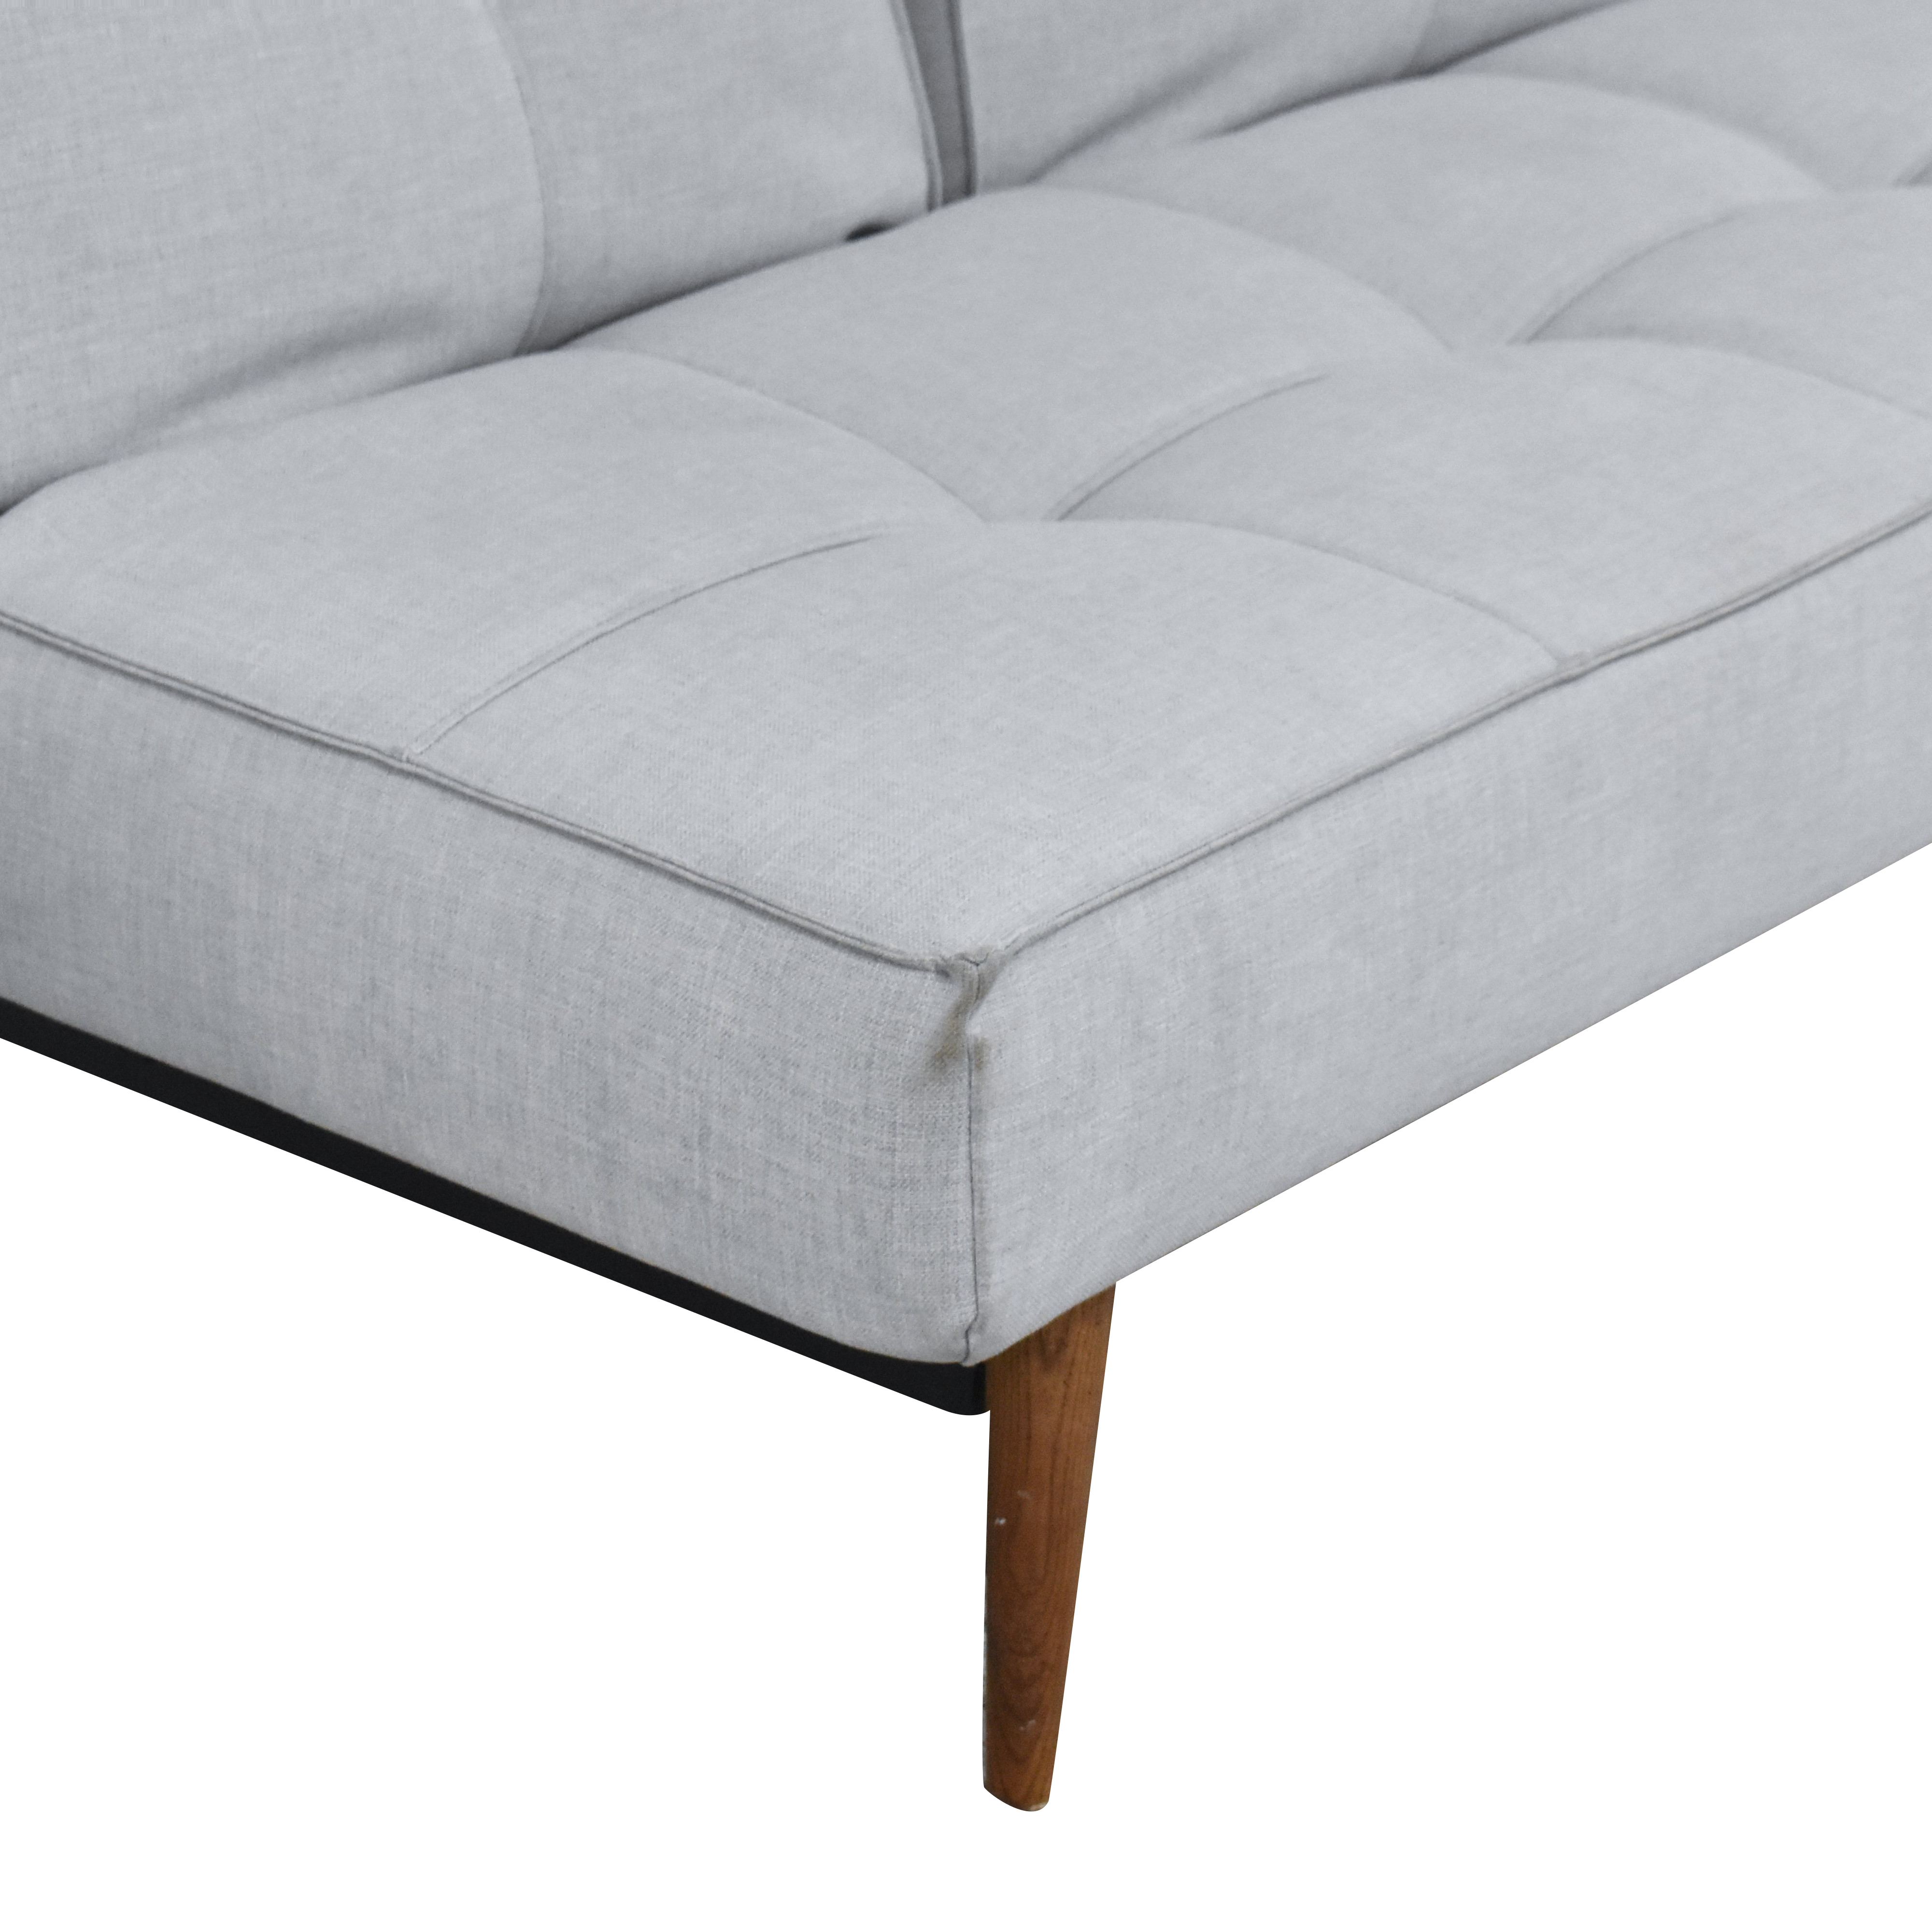 Innovation Living Innovation Living Convertible Sofa Bed price